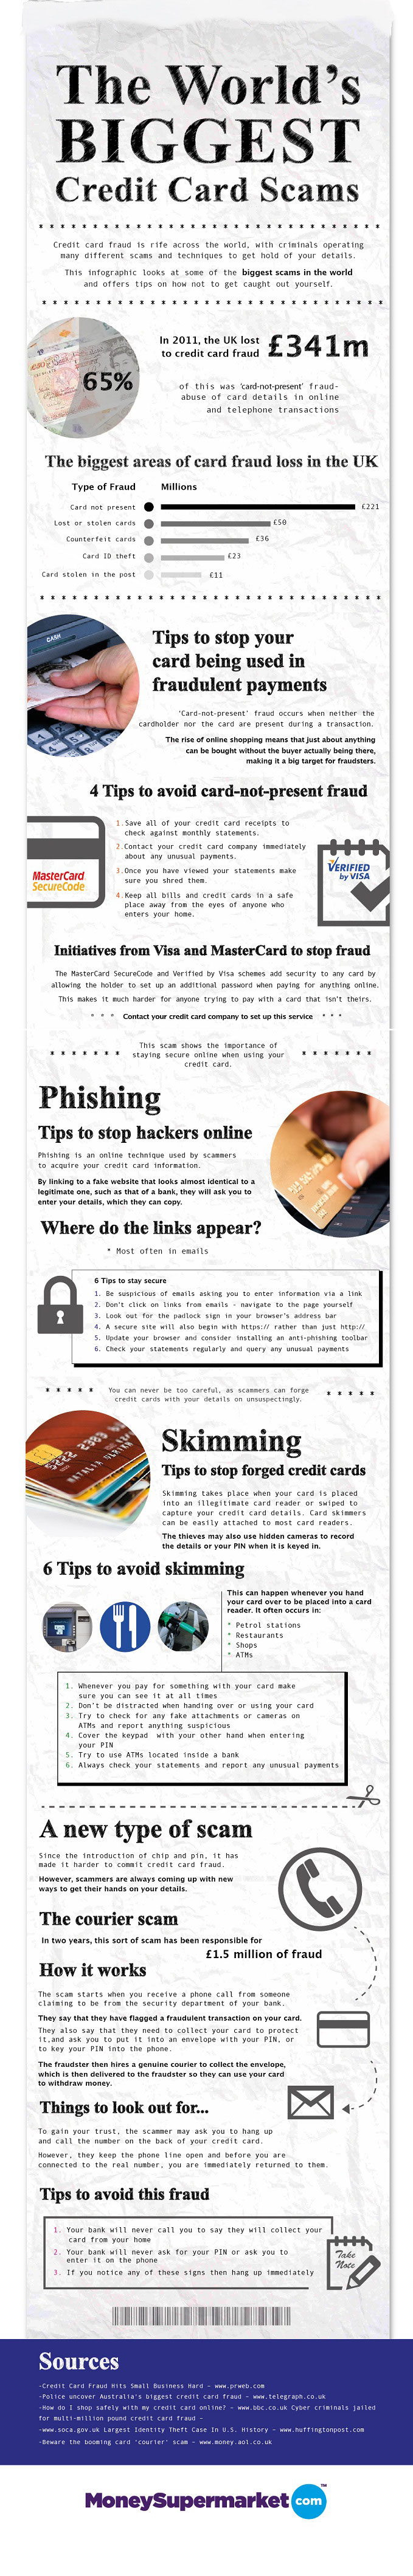 Credit Card Scam Protection-Infographic